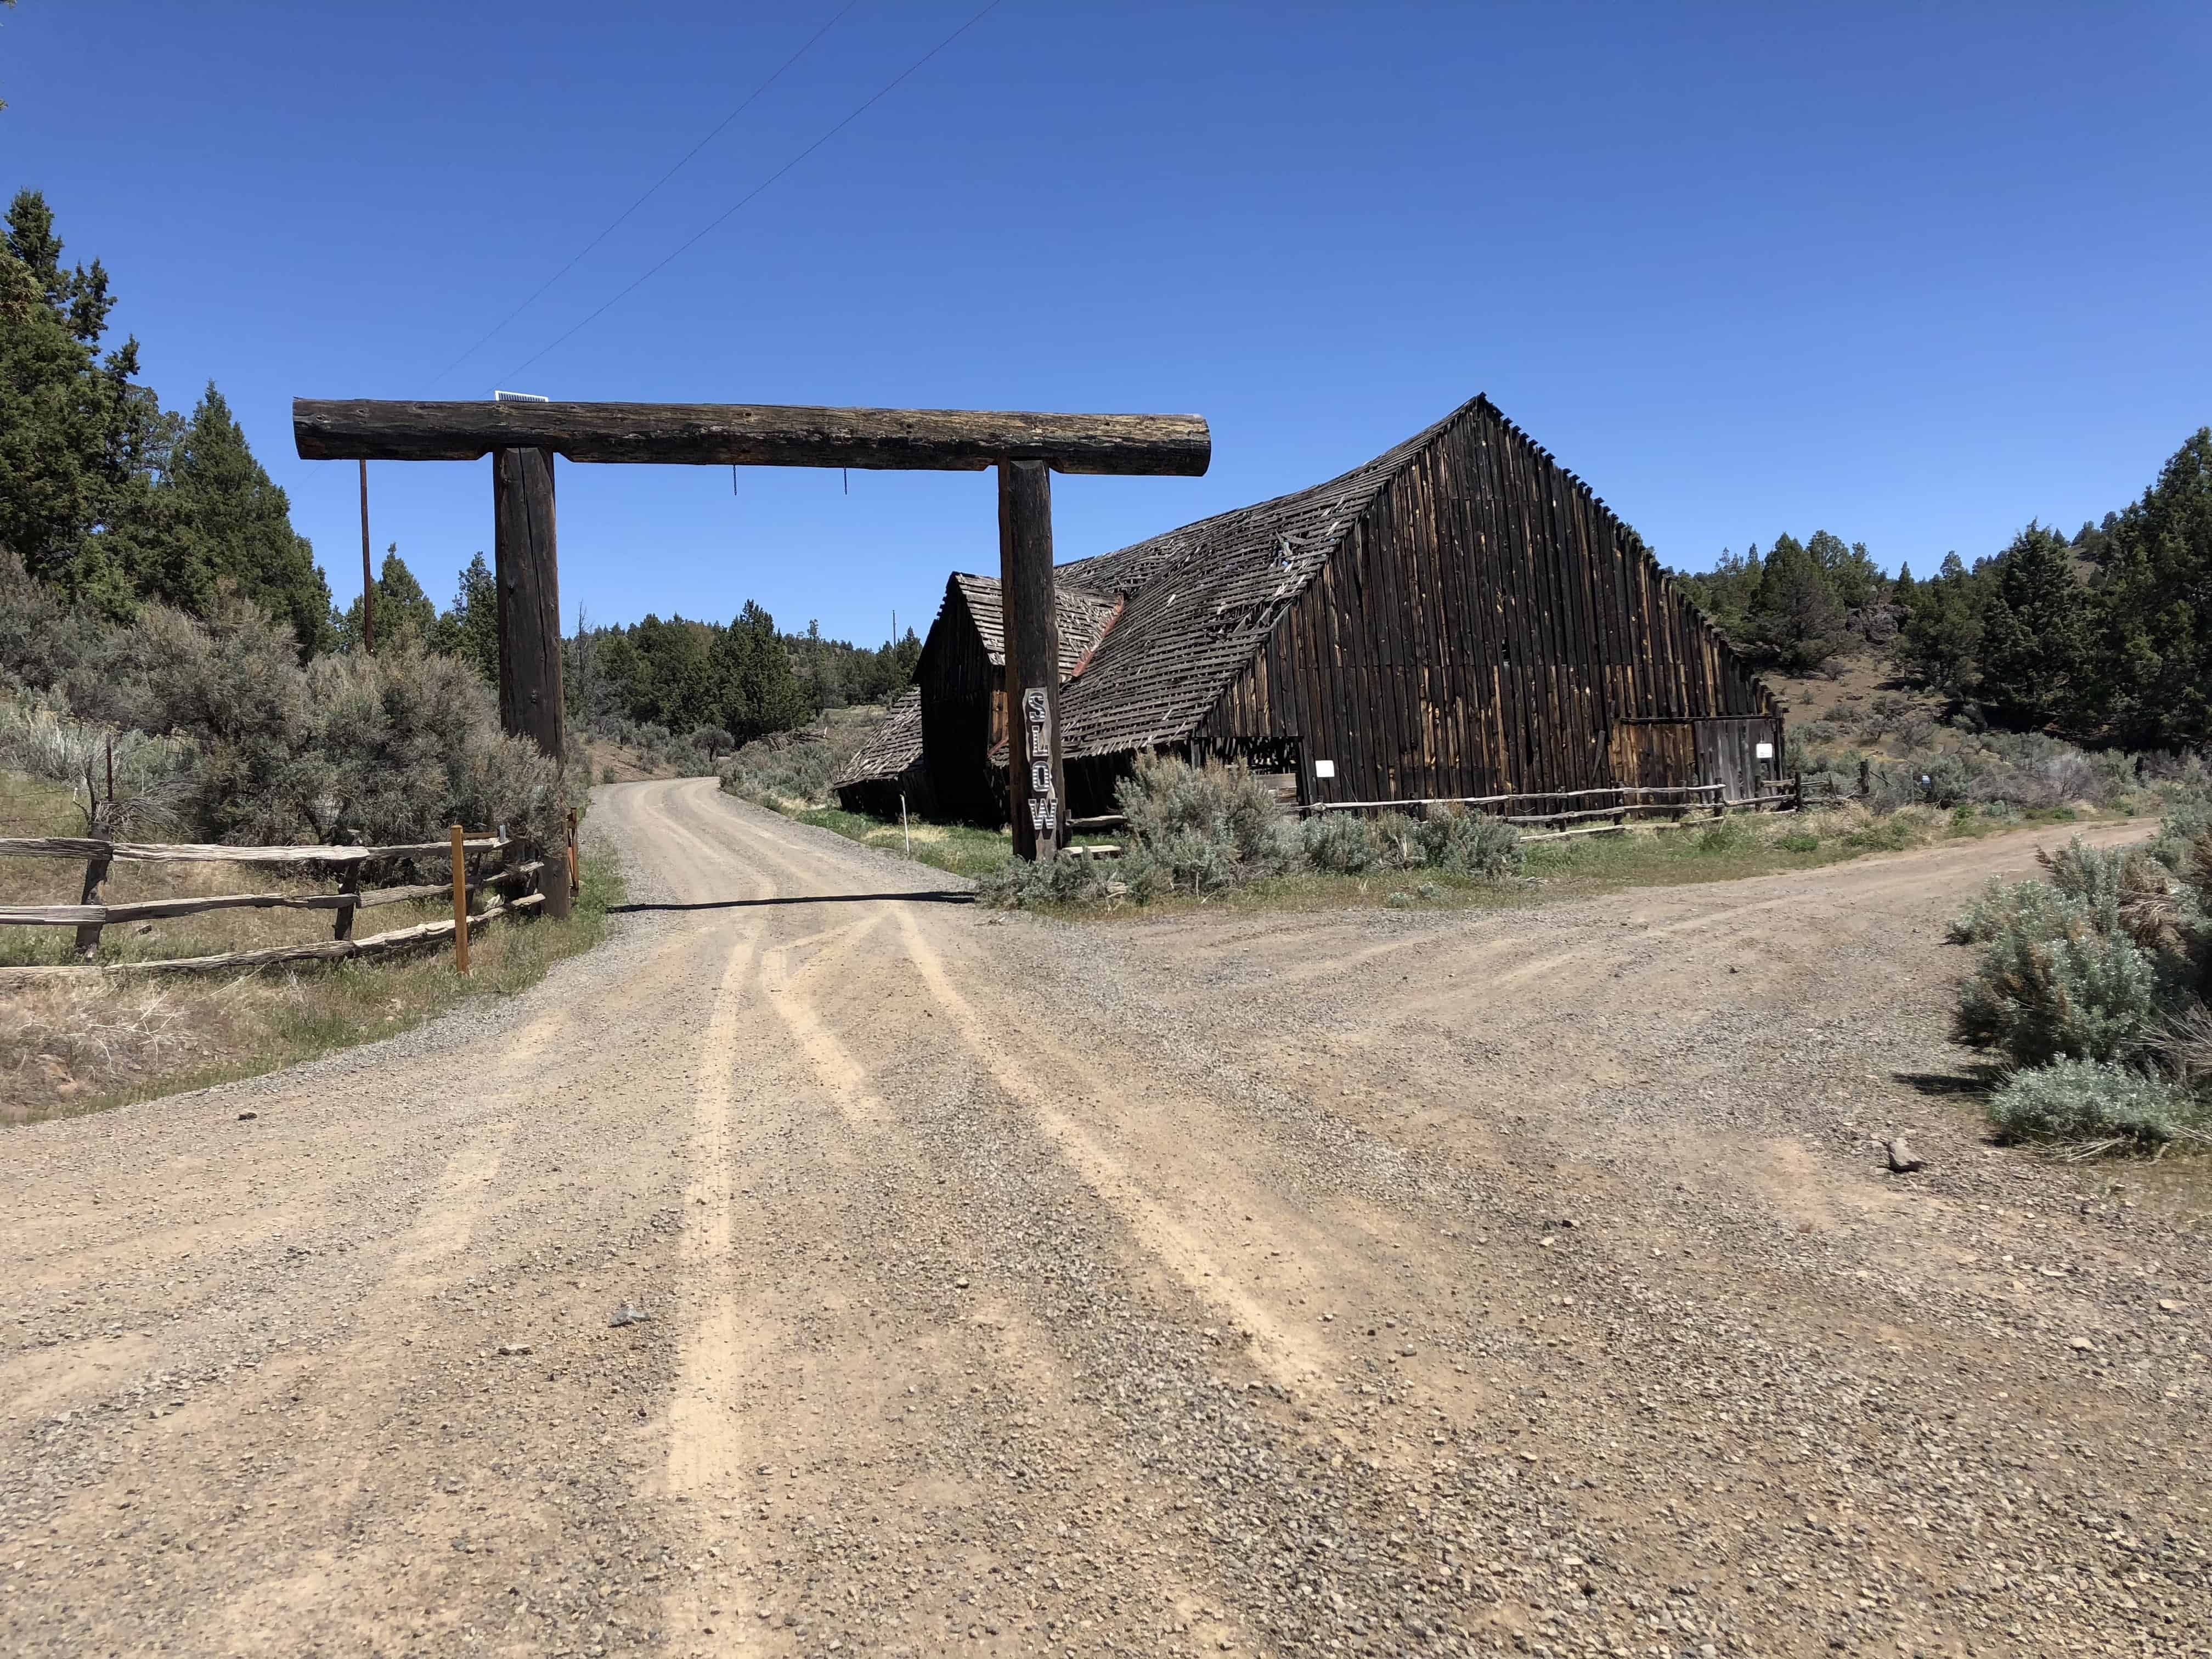 The large ranch sign at Coffelt barn off Little Bear Creek road.